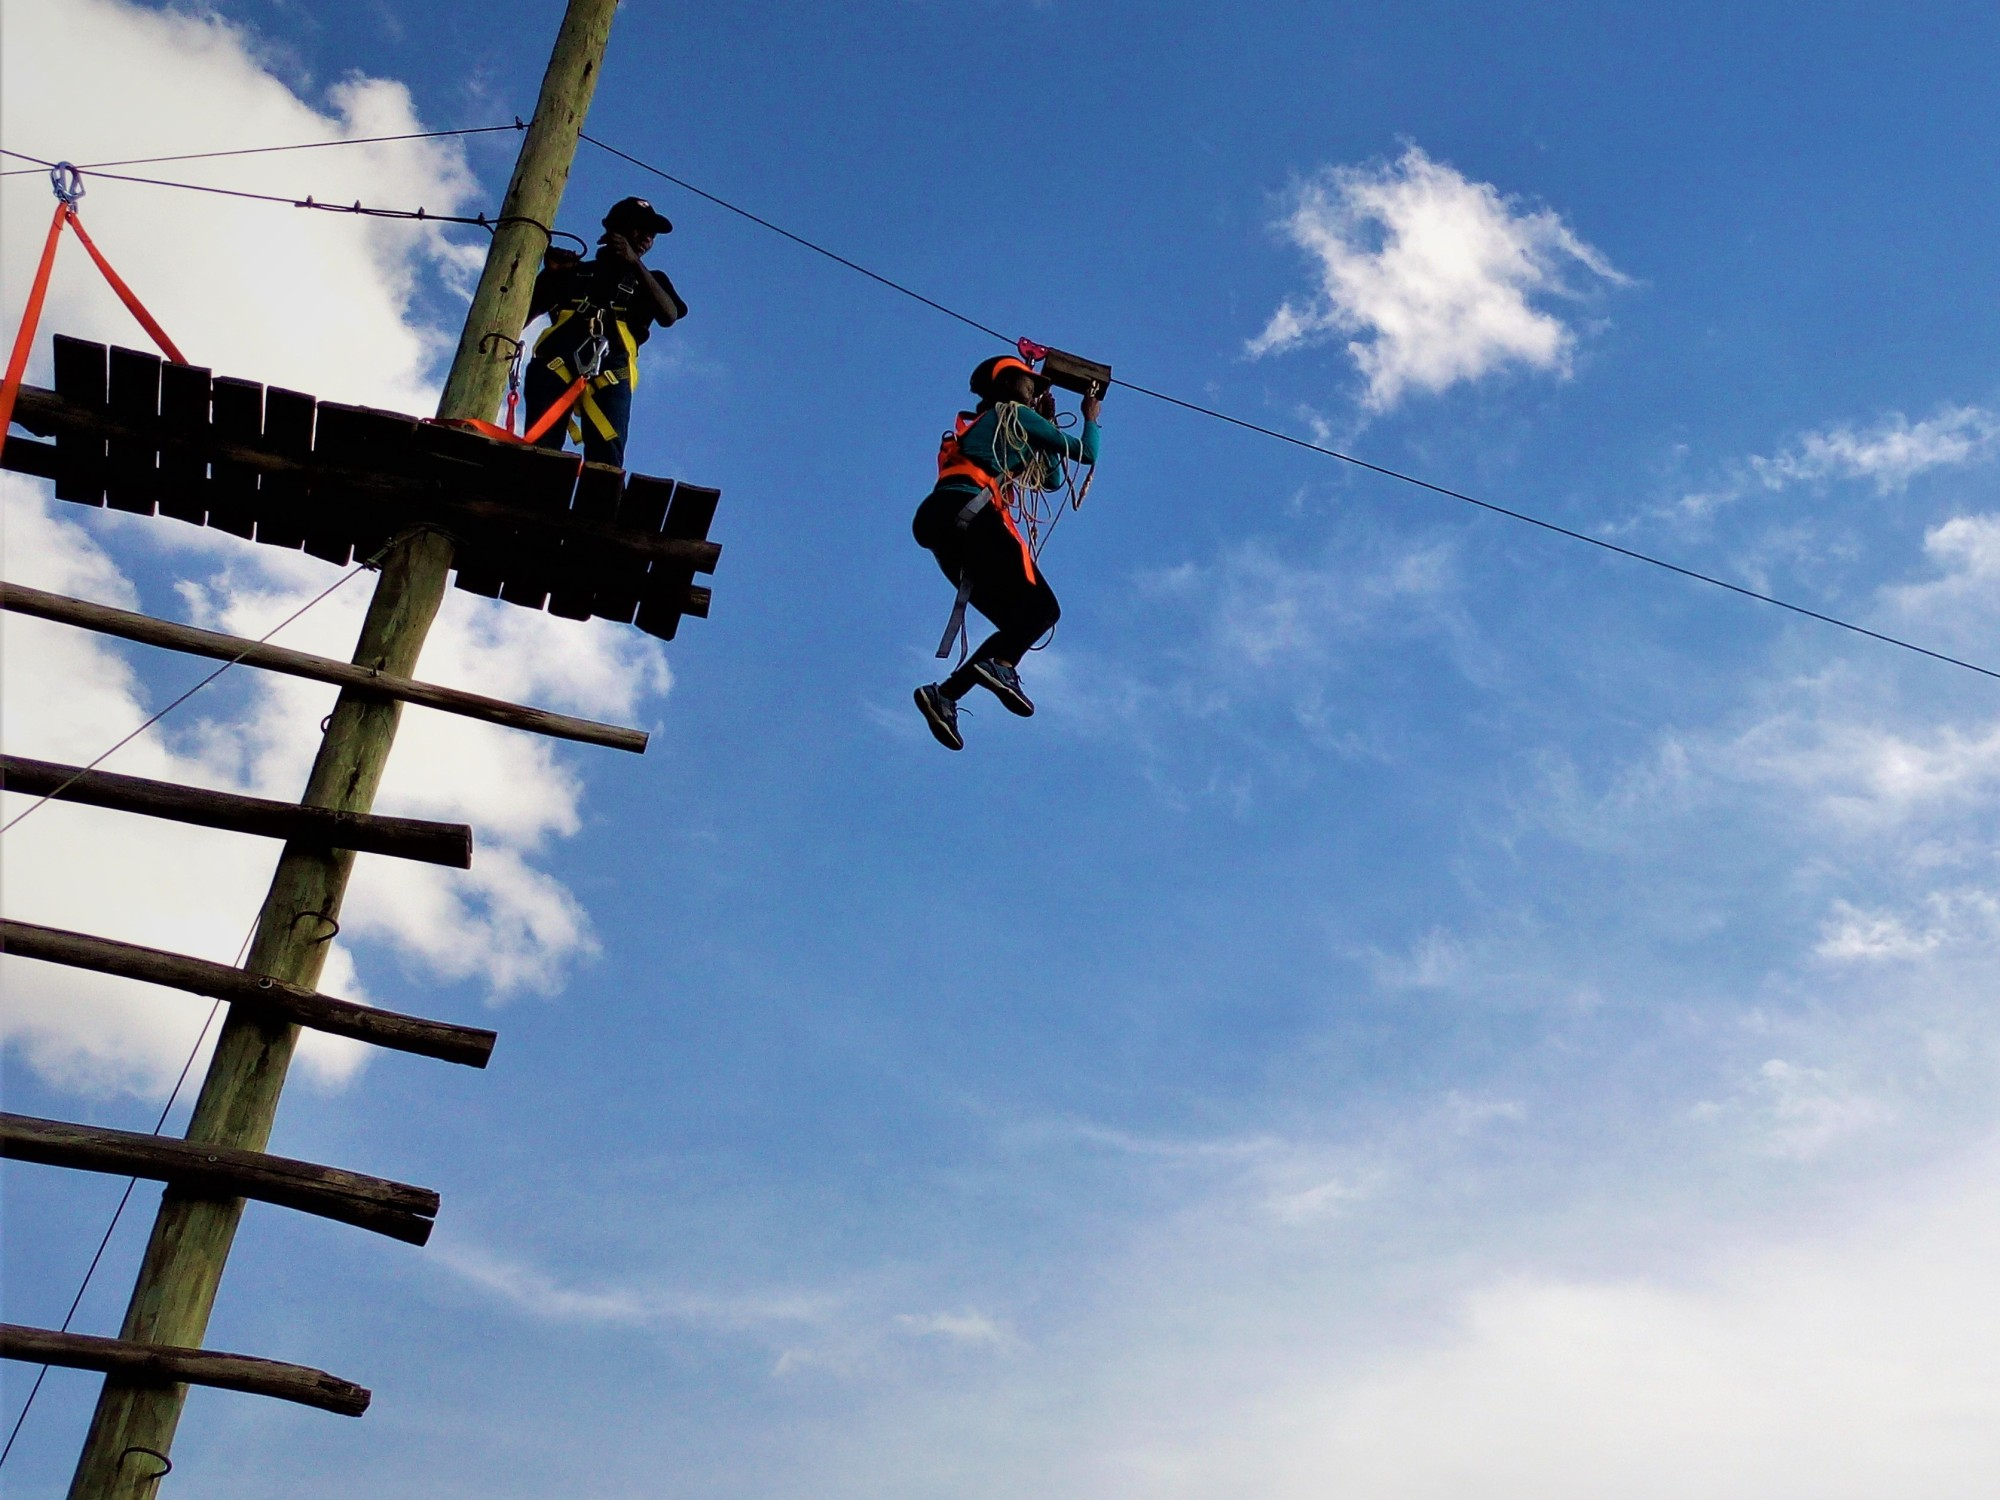 ZIP LINING AND ROPE CHALLENGES; KISAMES (NAIROBI) – akenyannomad